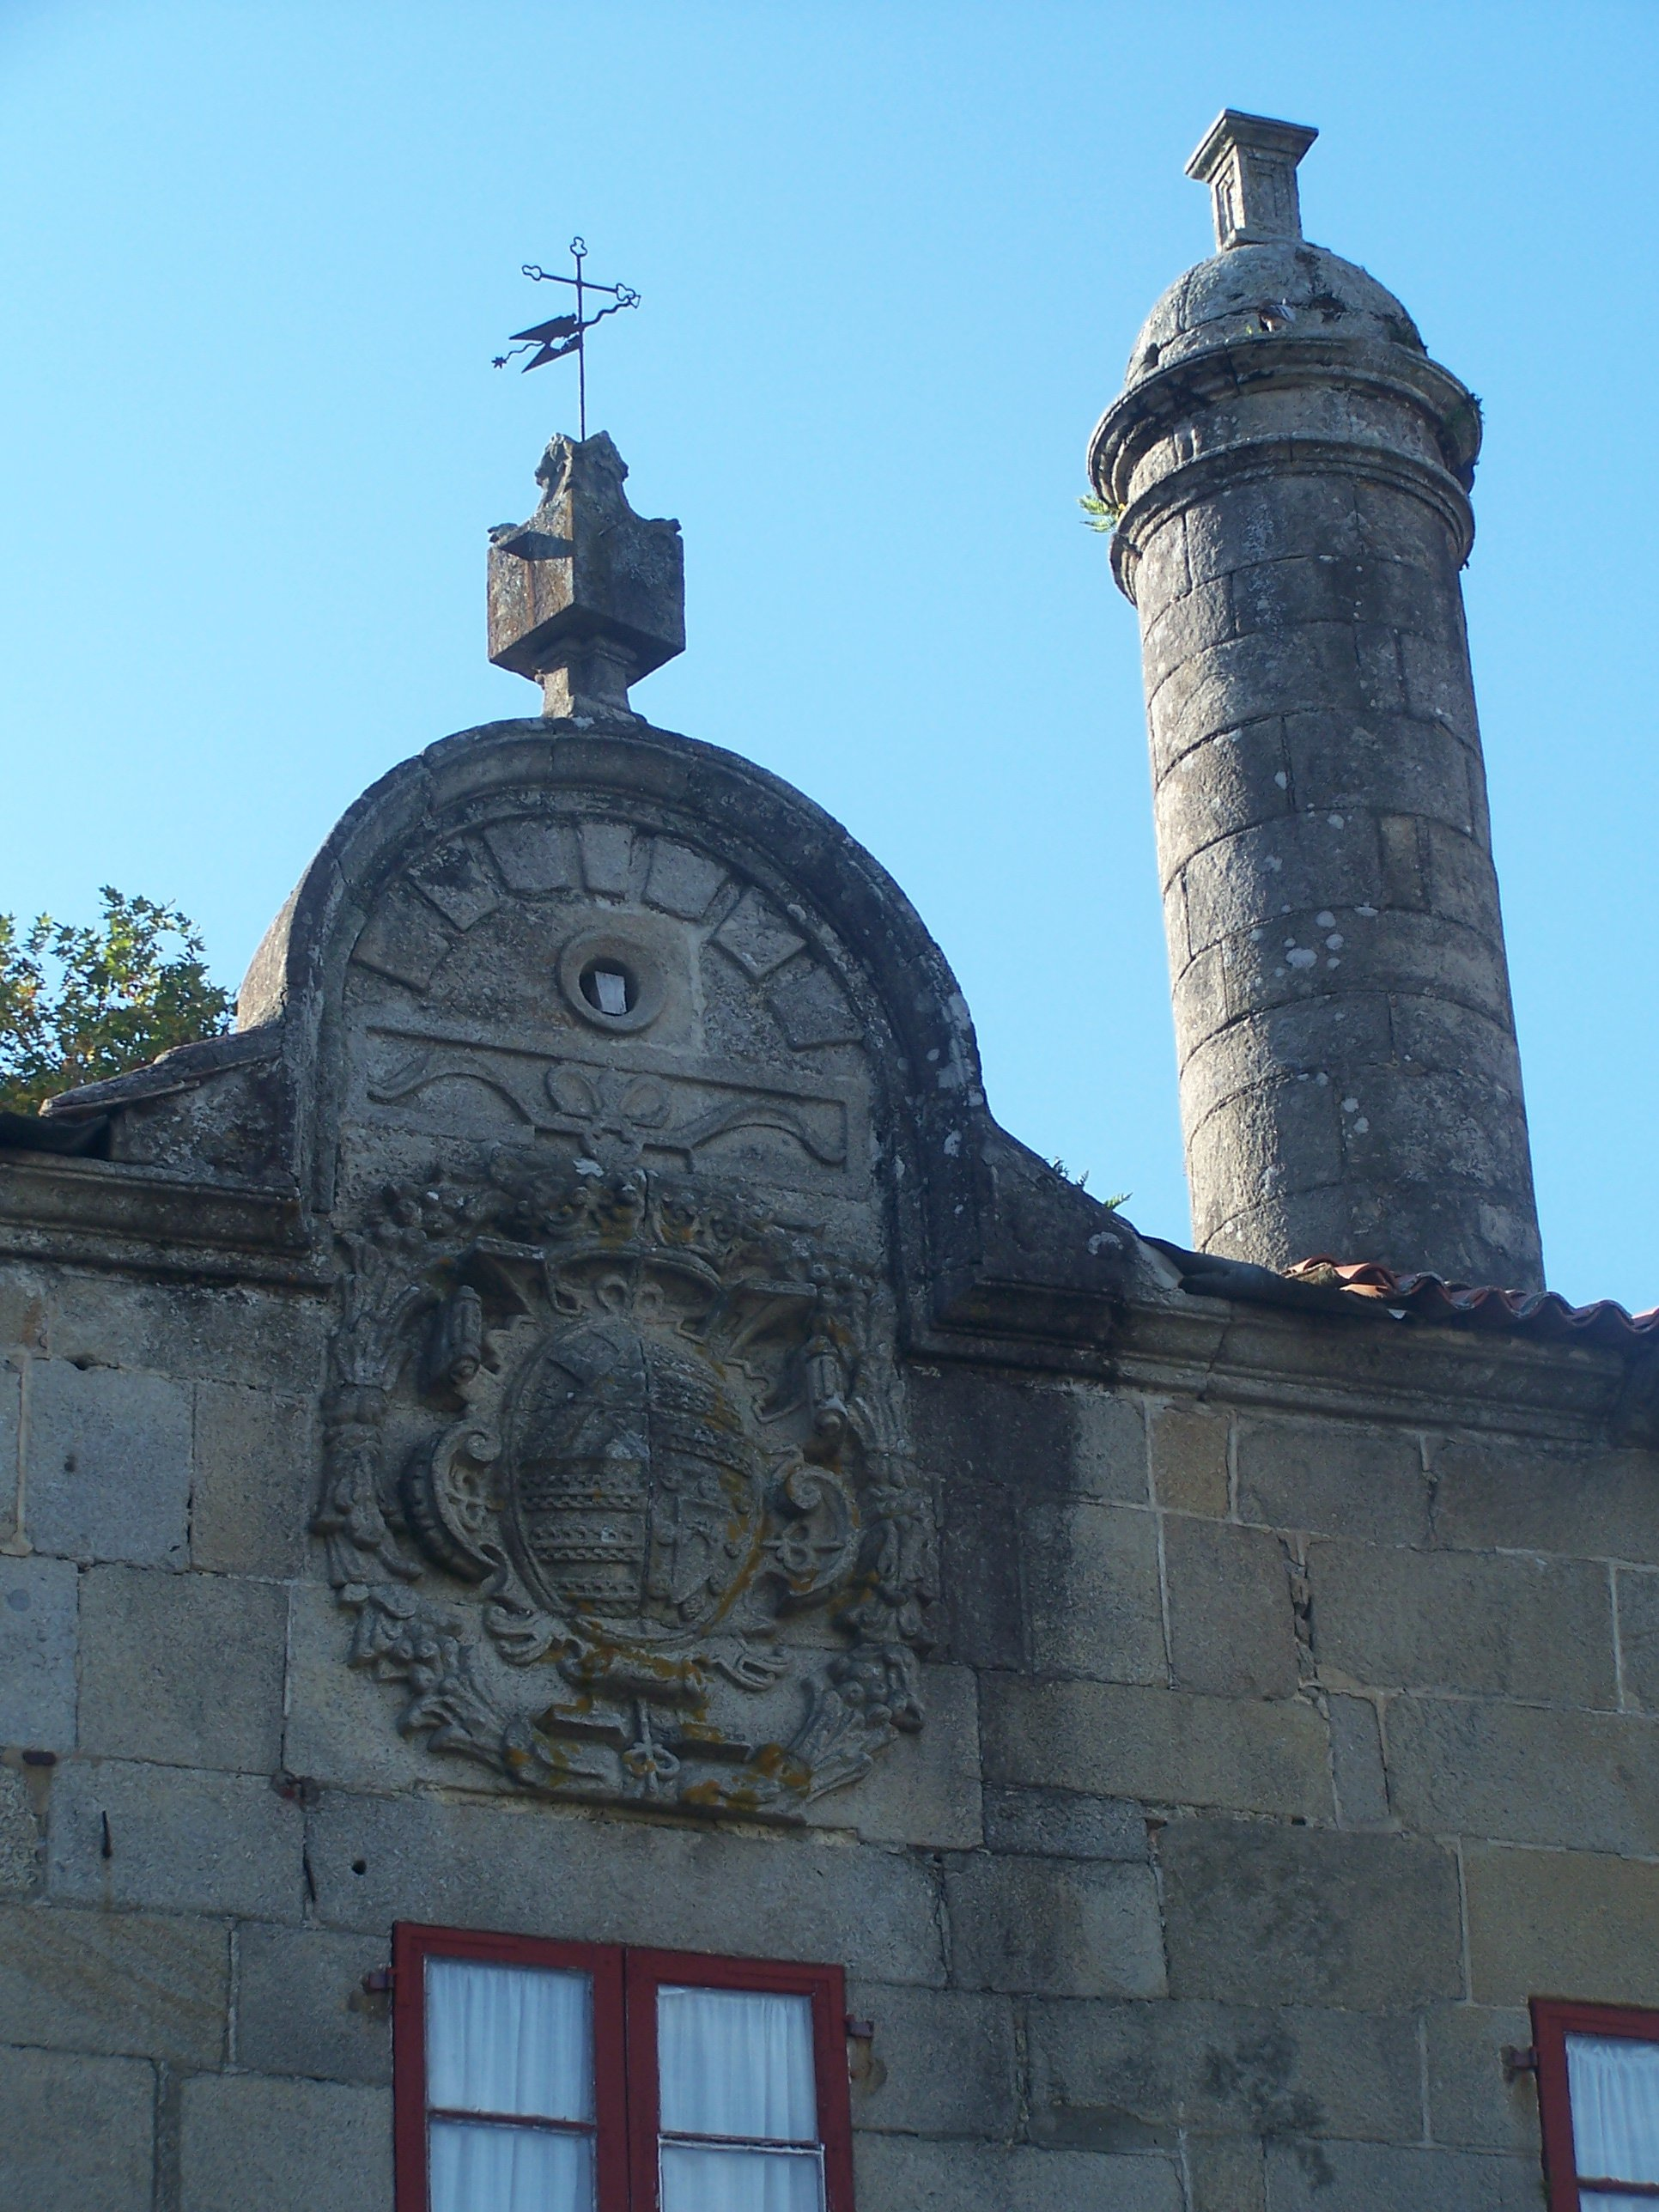 https://upload.wikimedia.org/wikipedia/commons/0/09/Pazo_de_Vista_Alegre._Detalle_de_escudo_y_chimenea..jpg